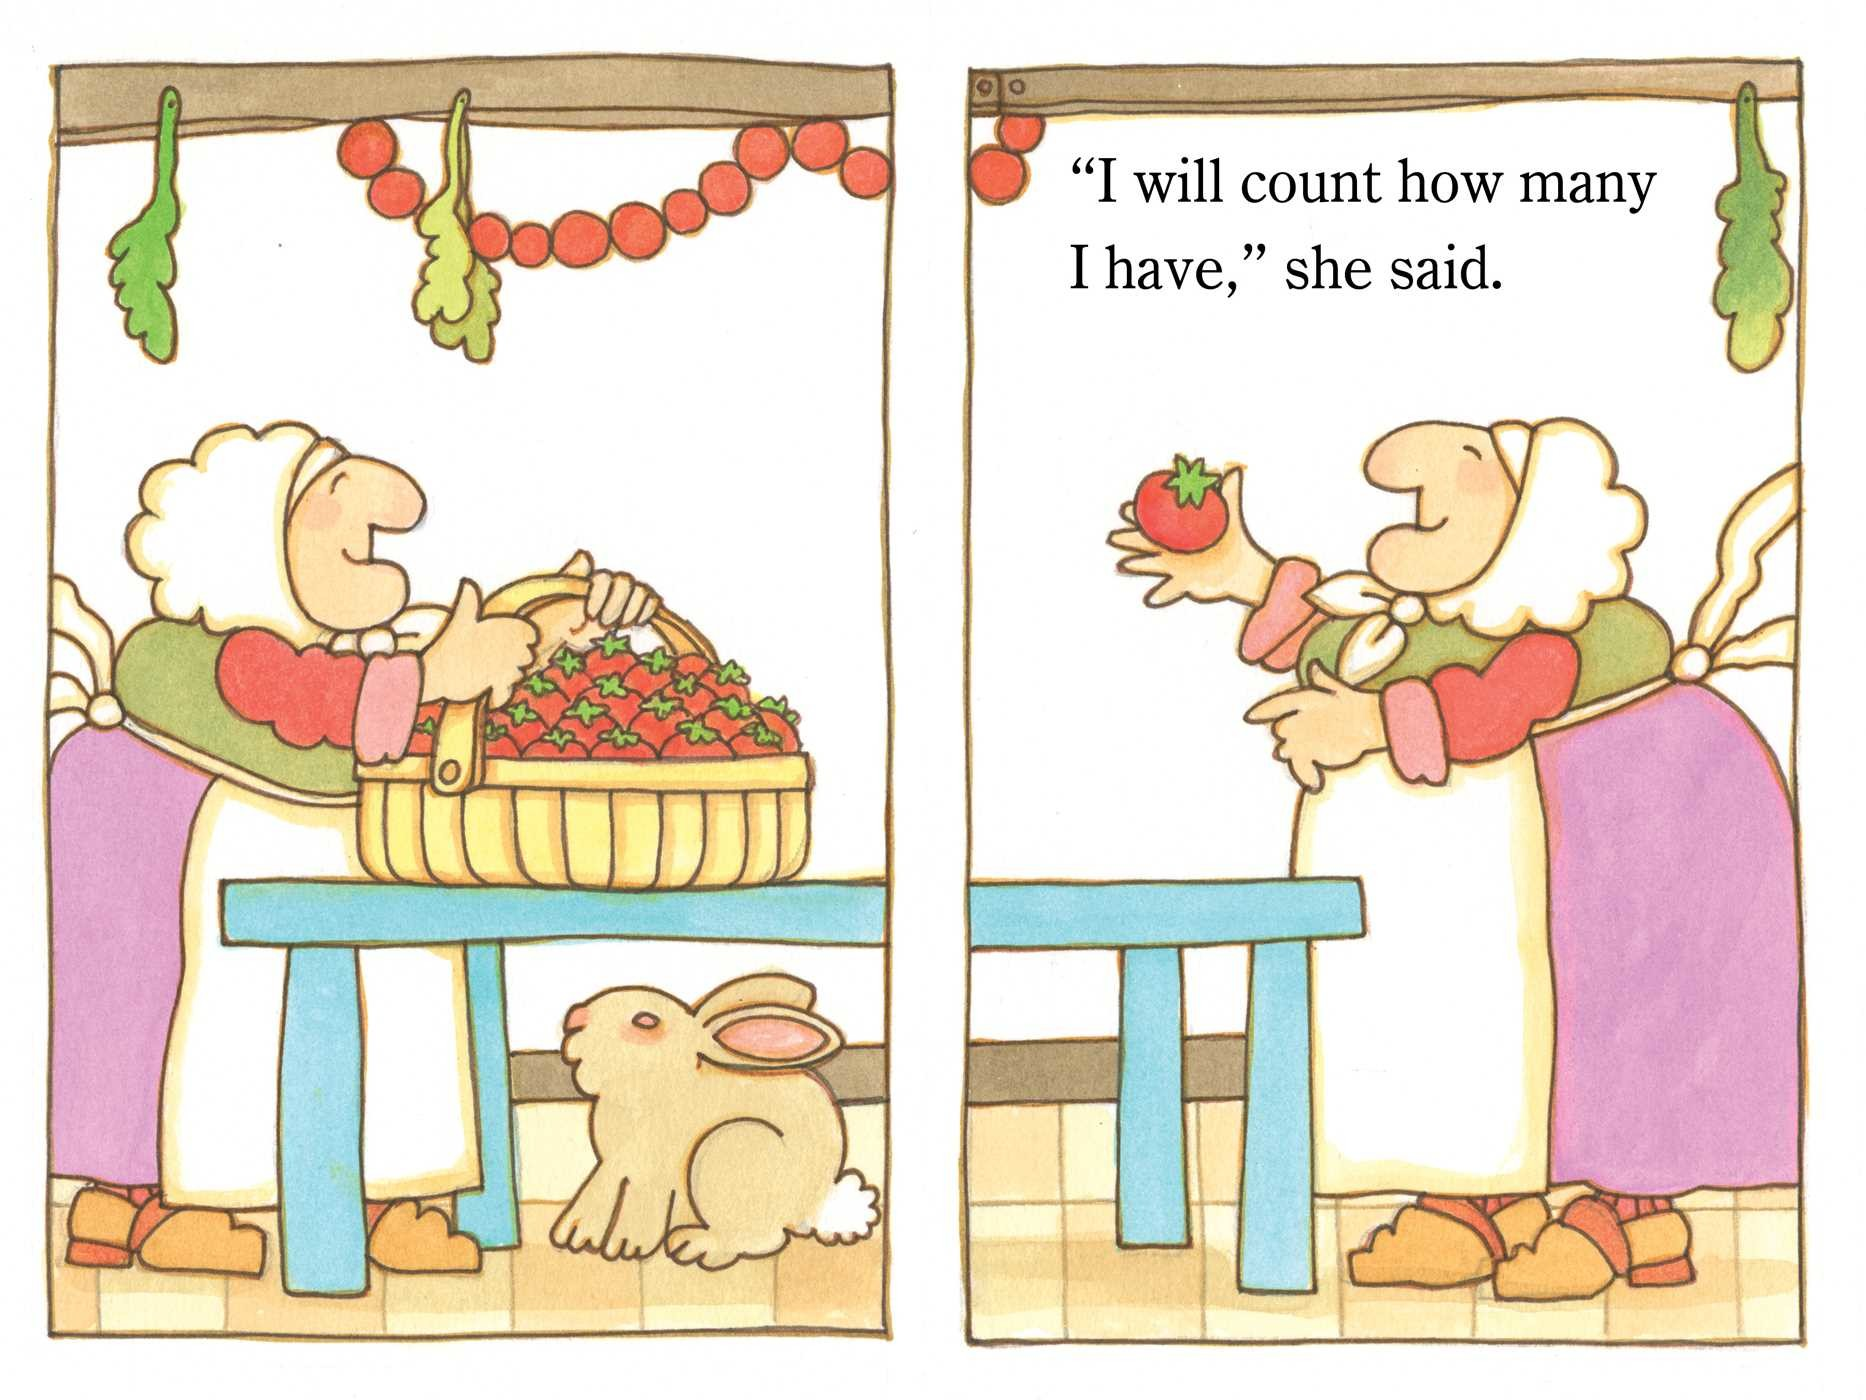 Strega nona and her tomatoes 9781481481342.in04